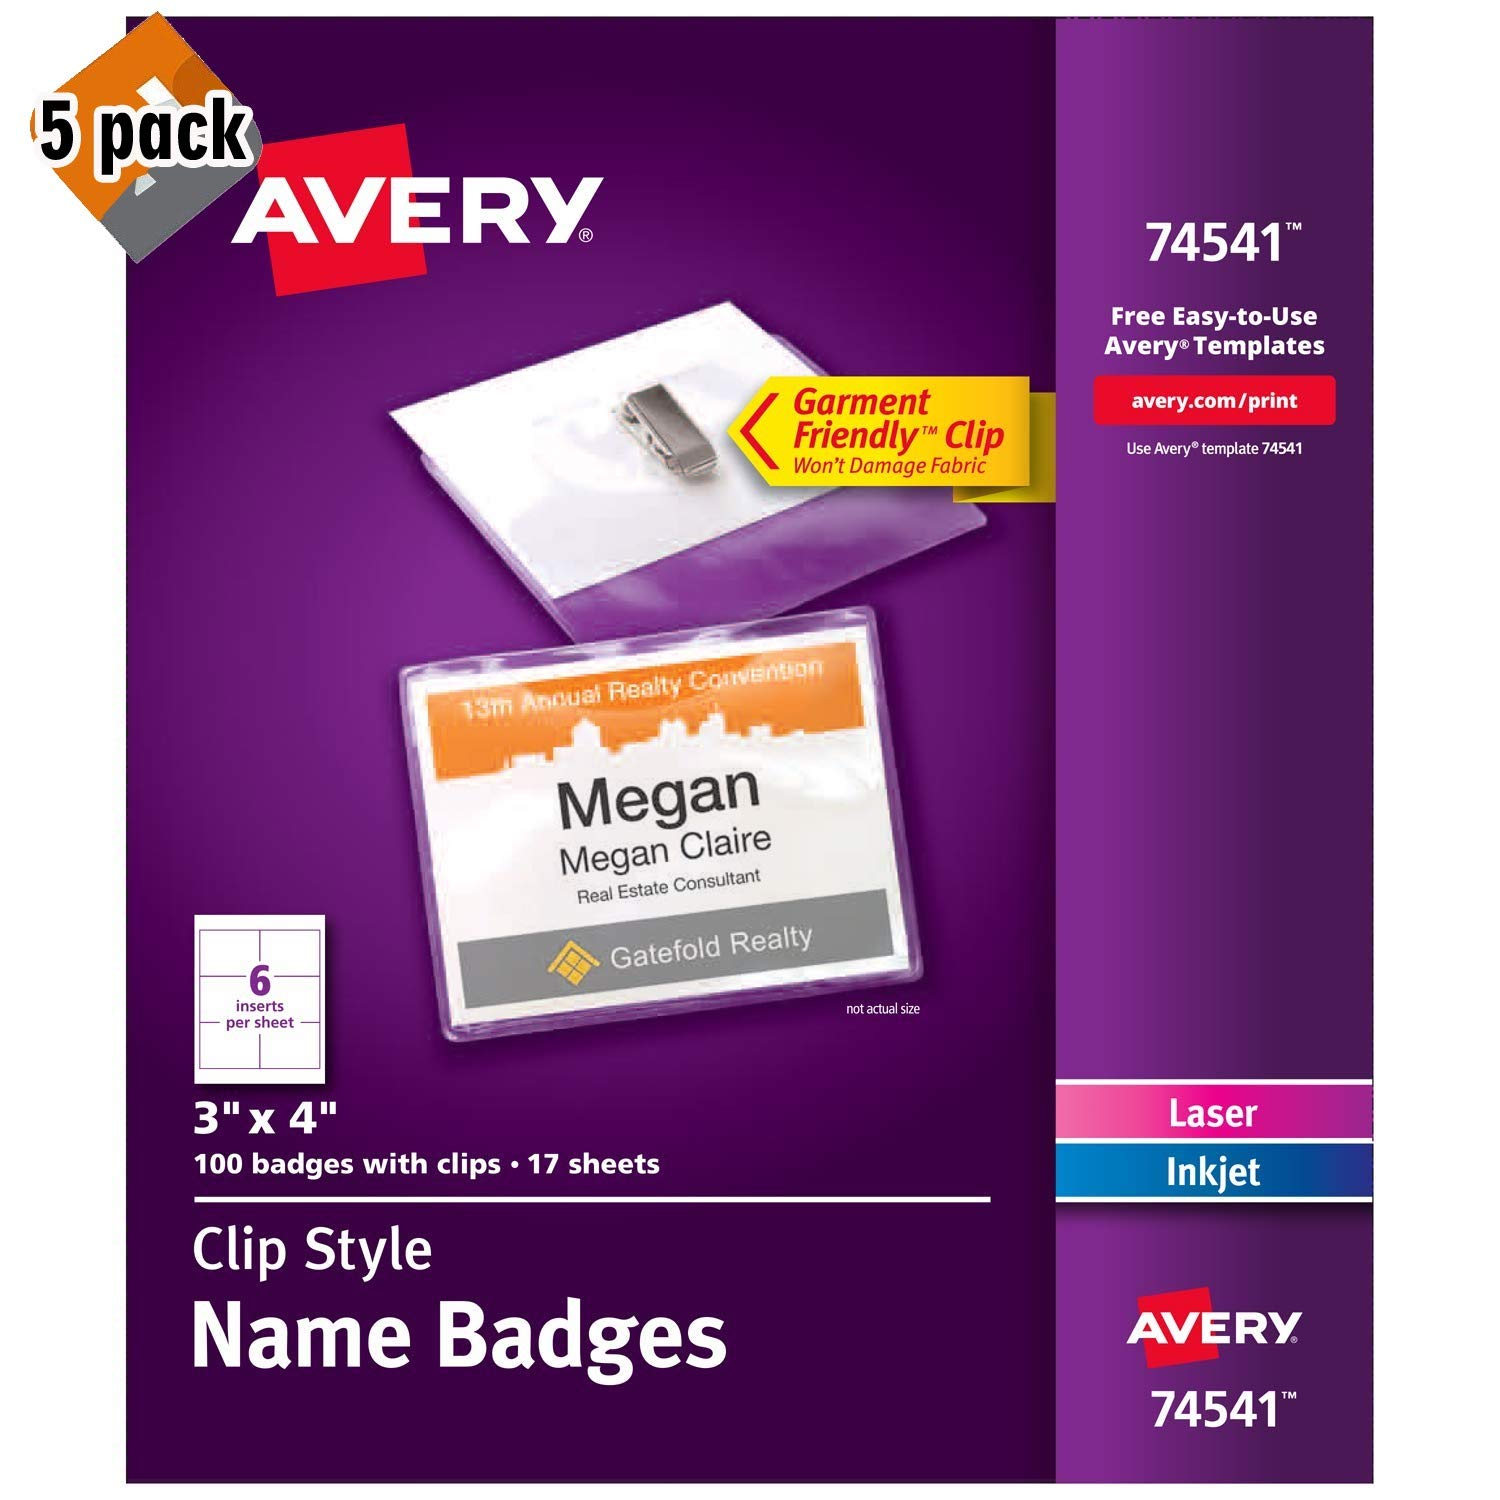 Avery Clip Name Badges, Print or Write, 3'' x 4'', 100 Inserts & Badge Holders with Clips (74541) 5 Pack by AVERY